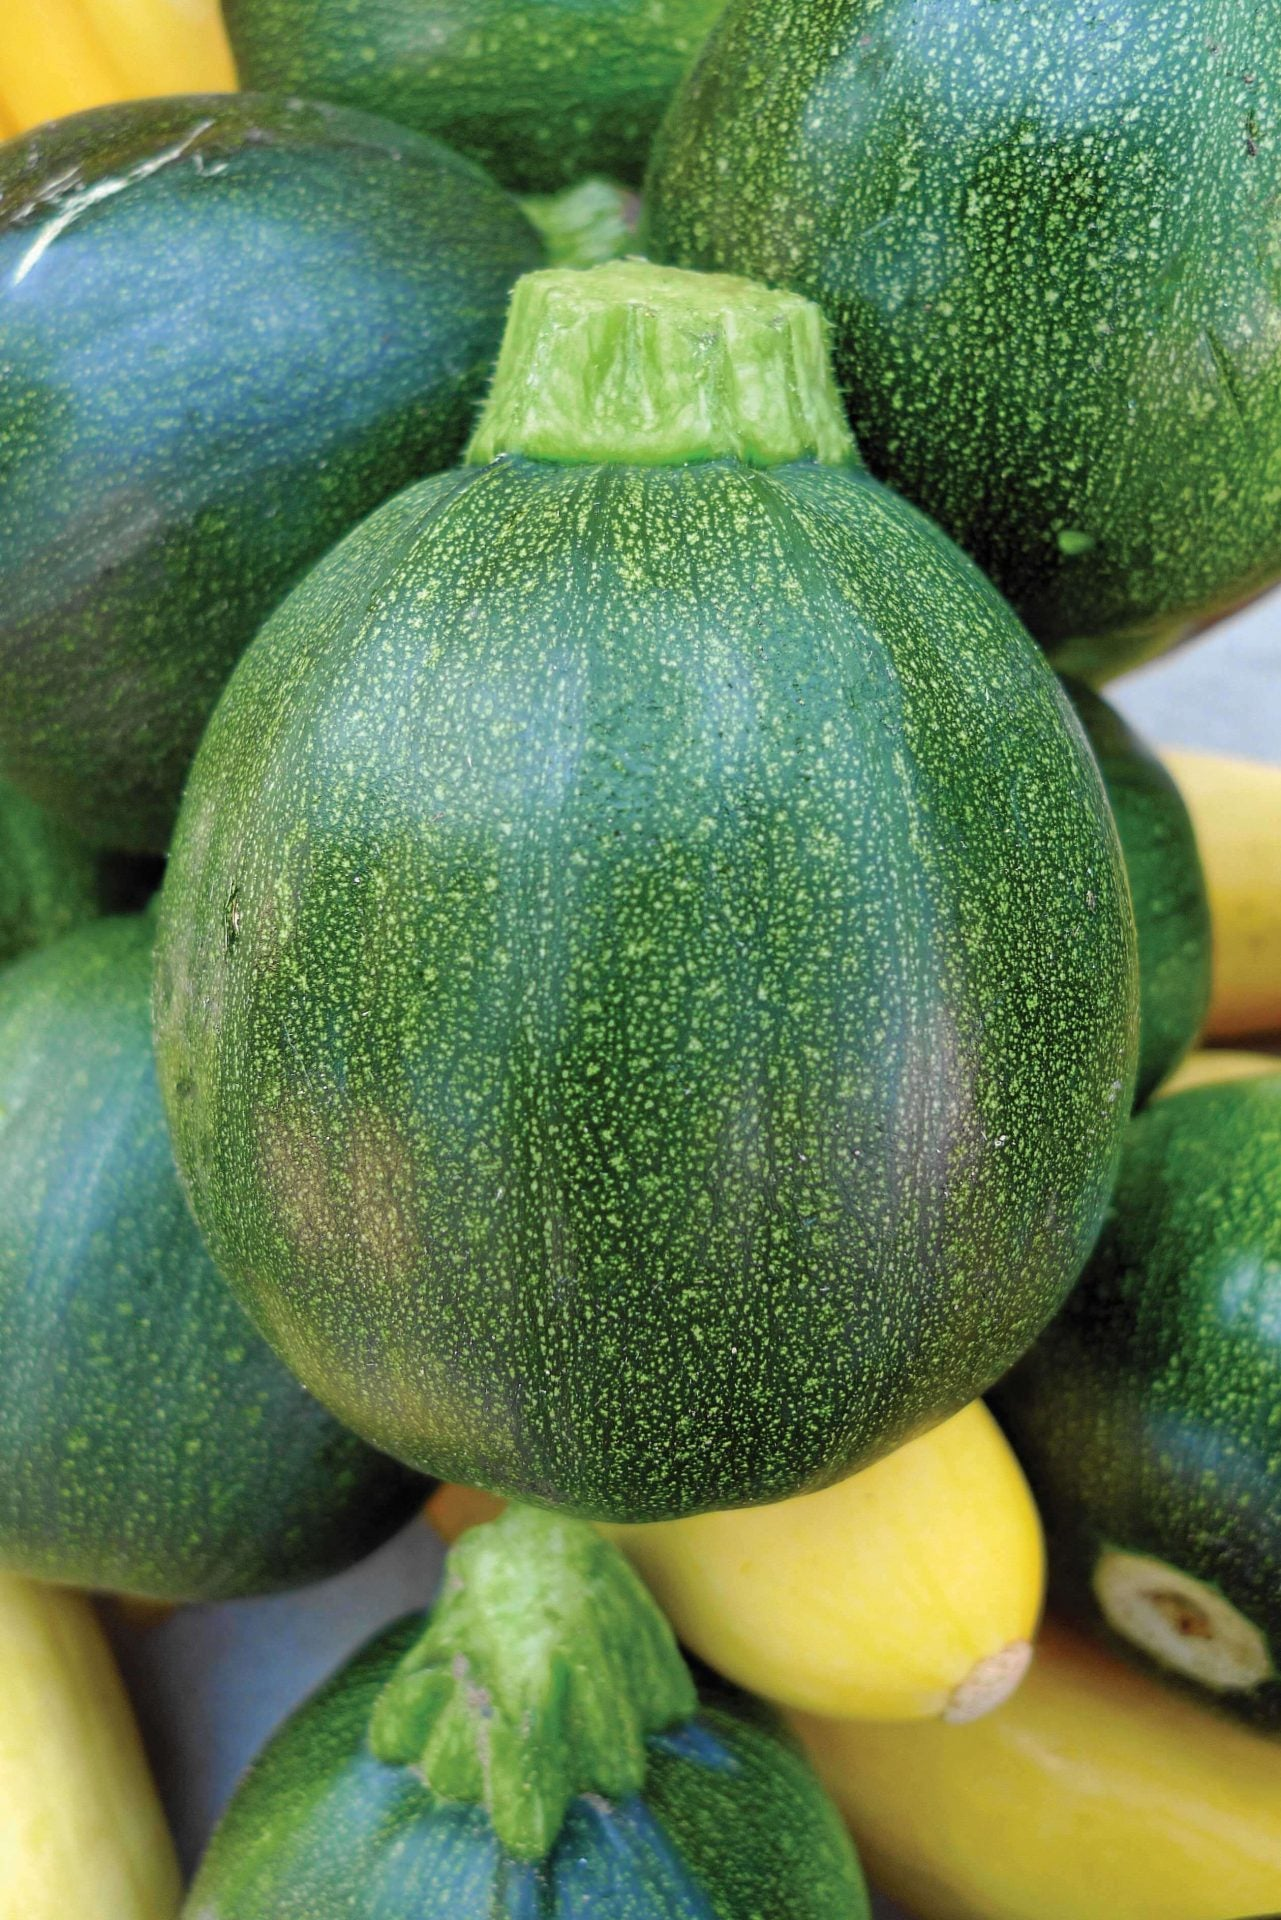 OSC Ronde De Nice Zucchini Seeds (Aimers International) - Packet